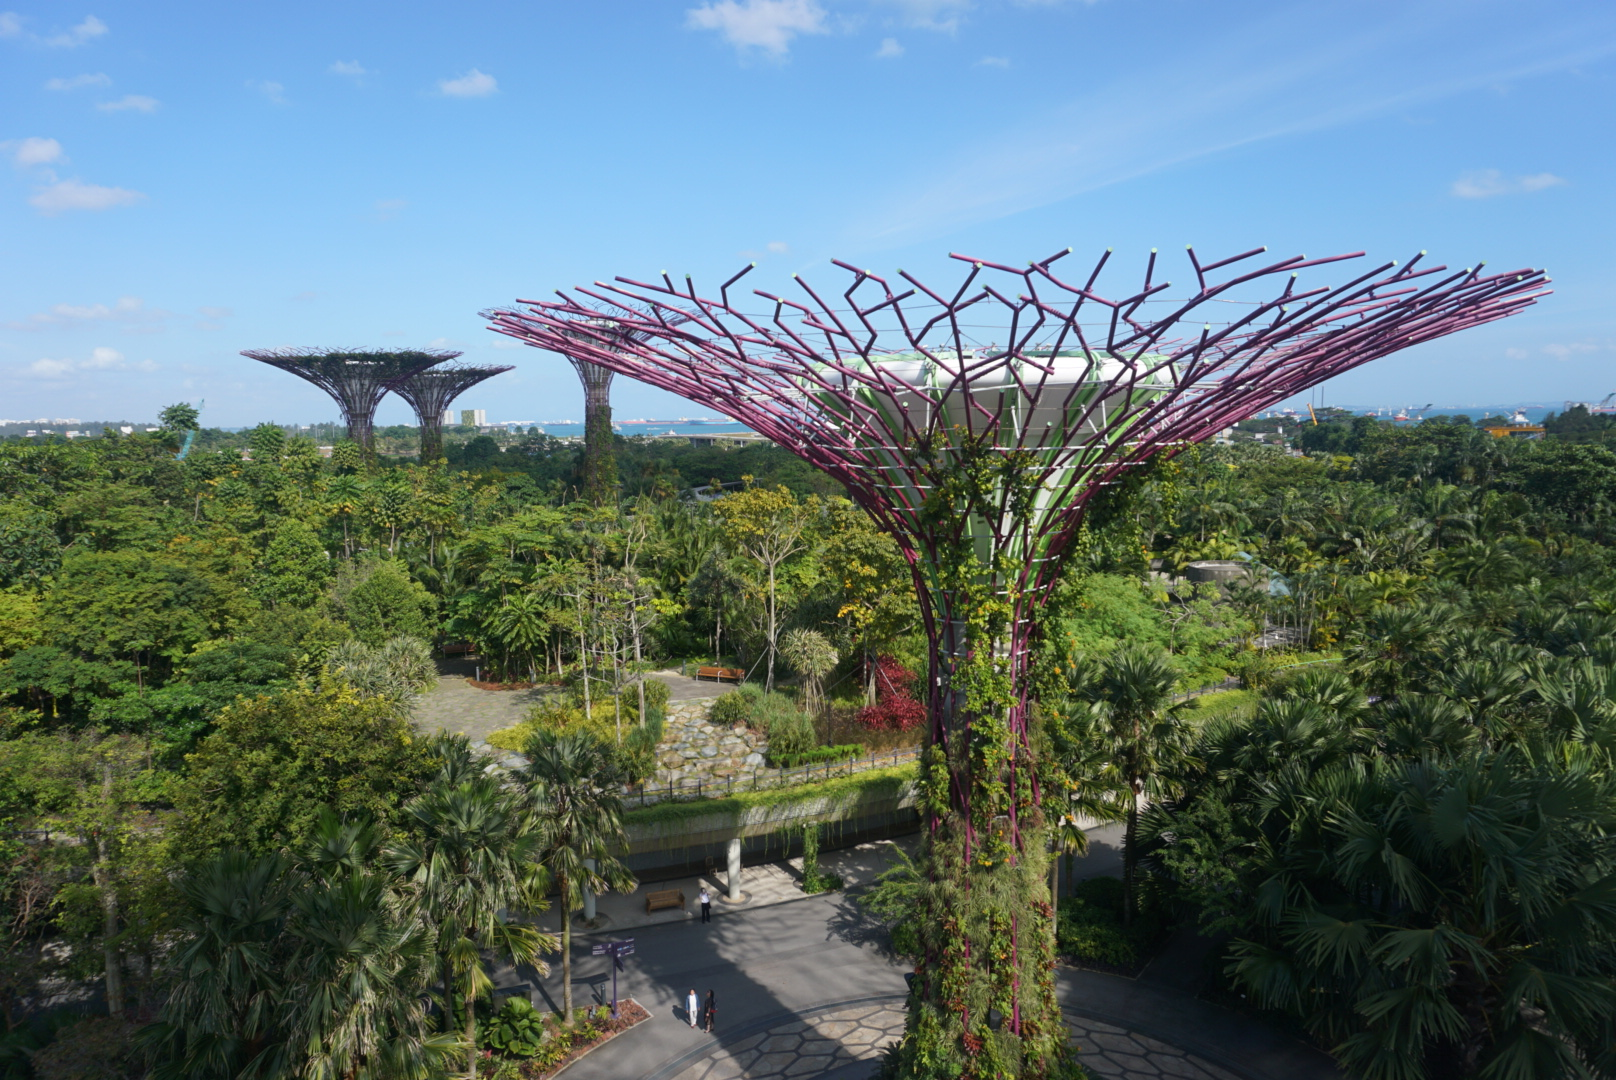 Skywalk on the Super Trees at the Gardens by the Bay in Singapore. boldlygotravel.com